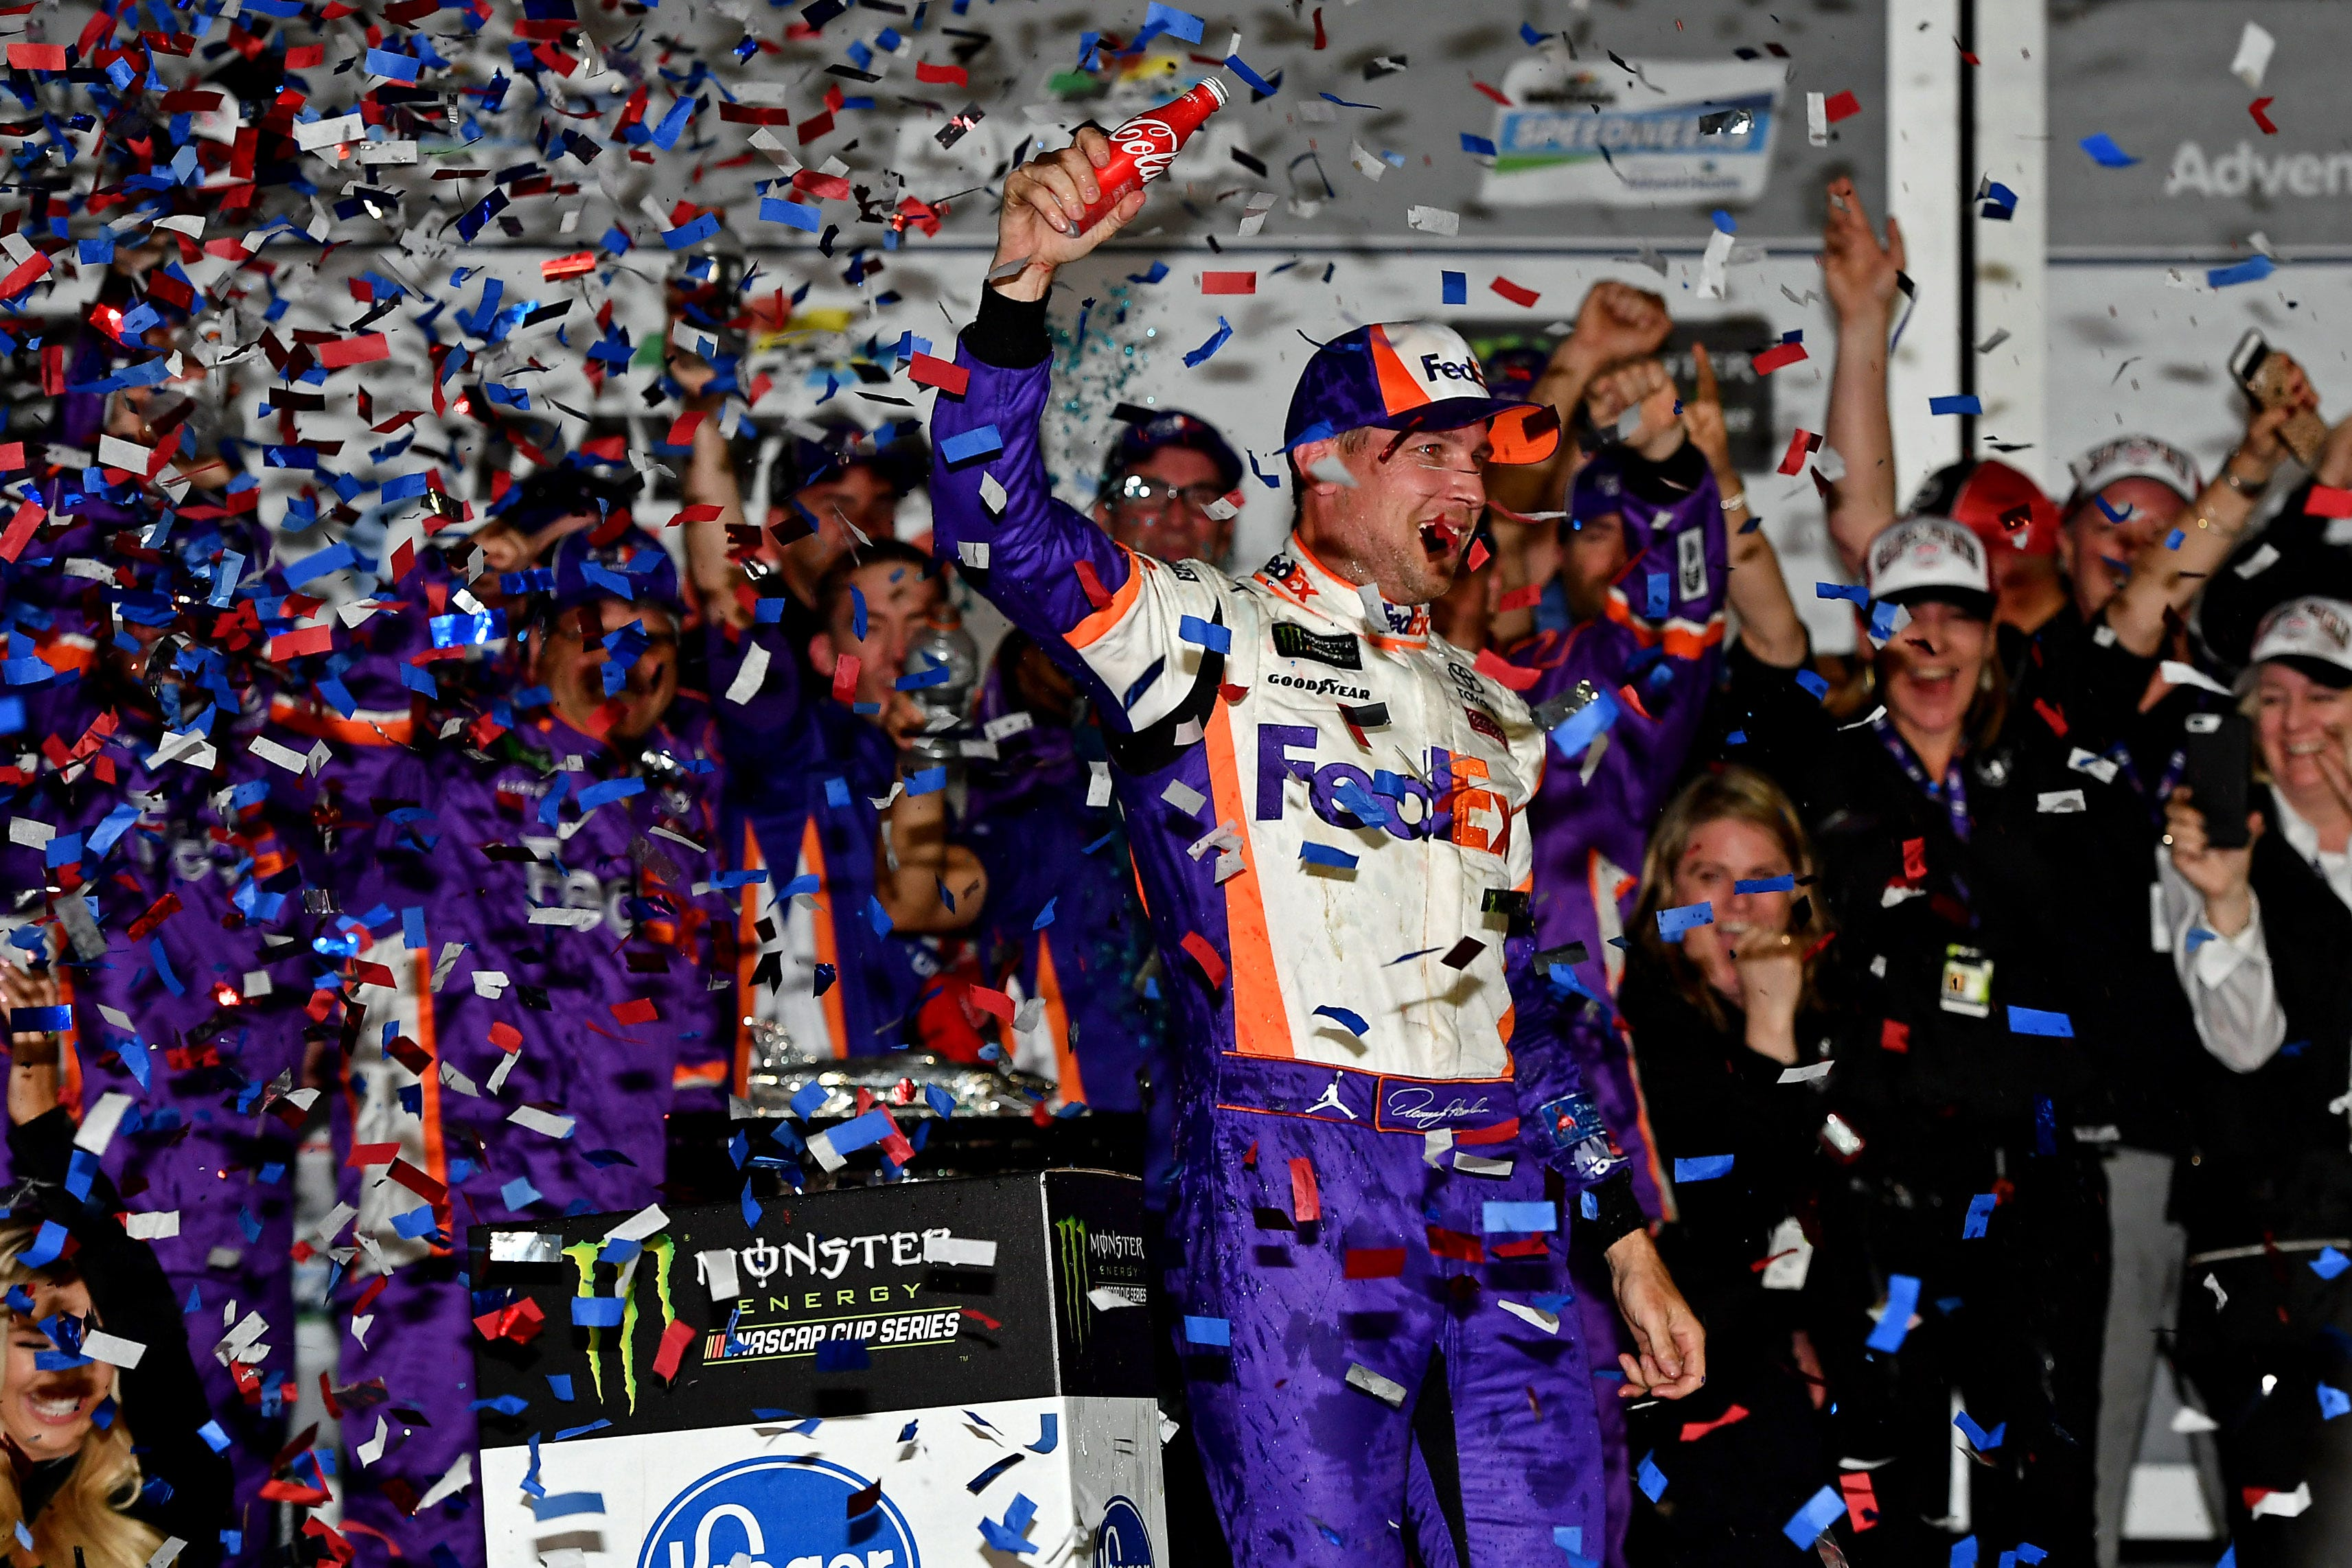 NASCAR Cup Series driver Denny Hamlin celebrates winning the Daytona 500 at Daytona International Speedway.